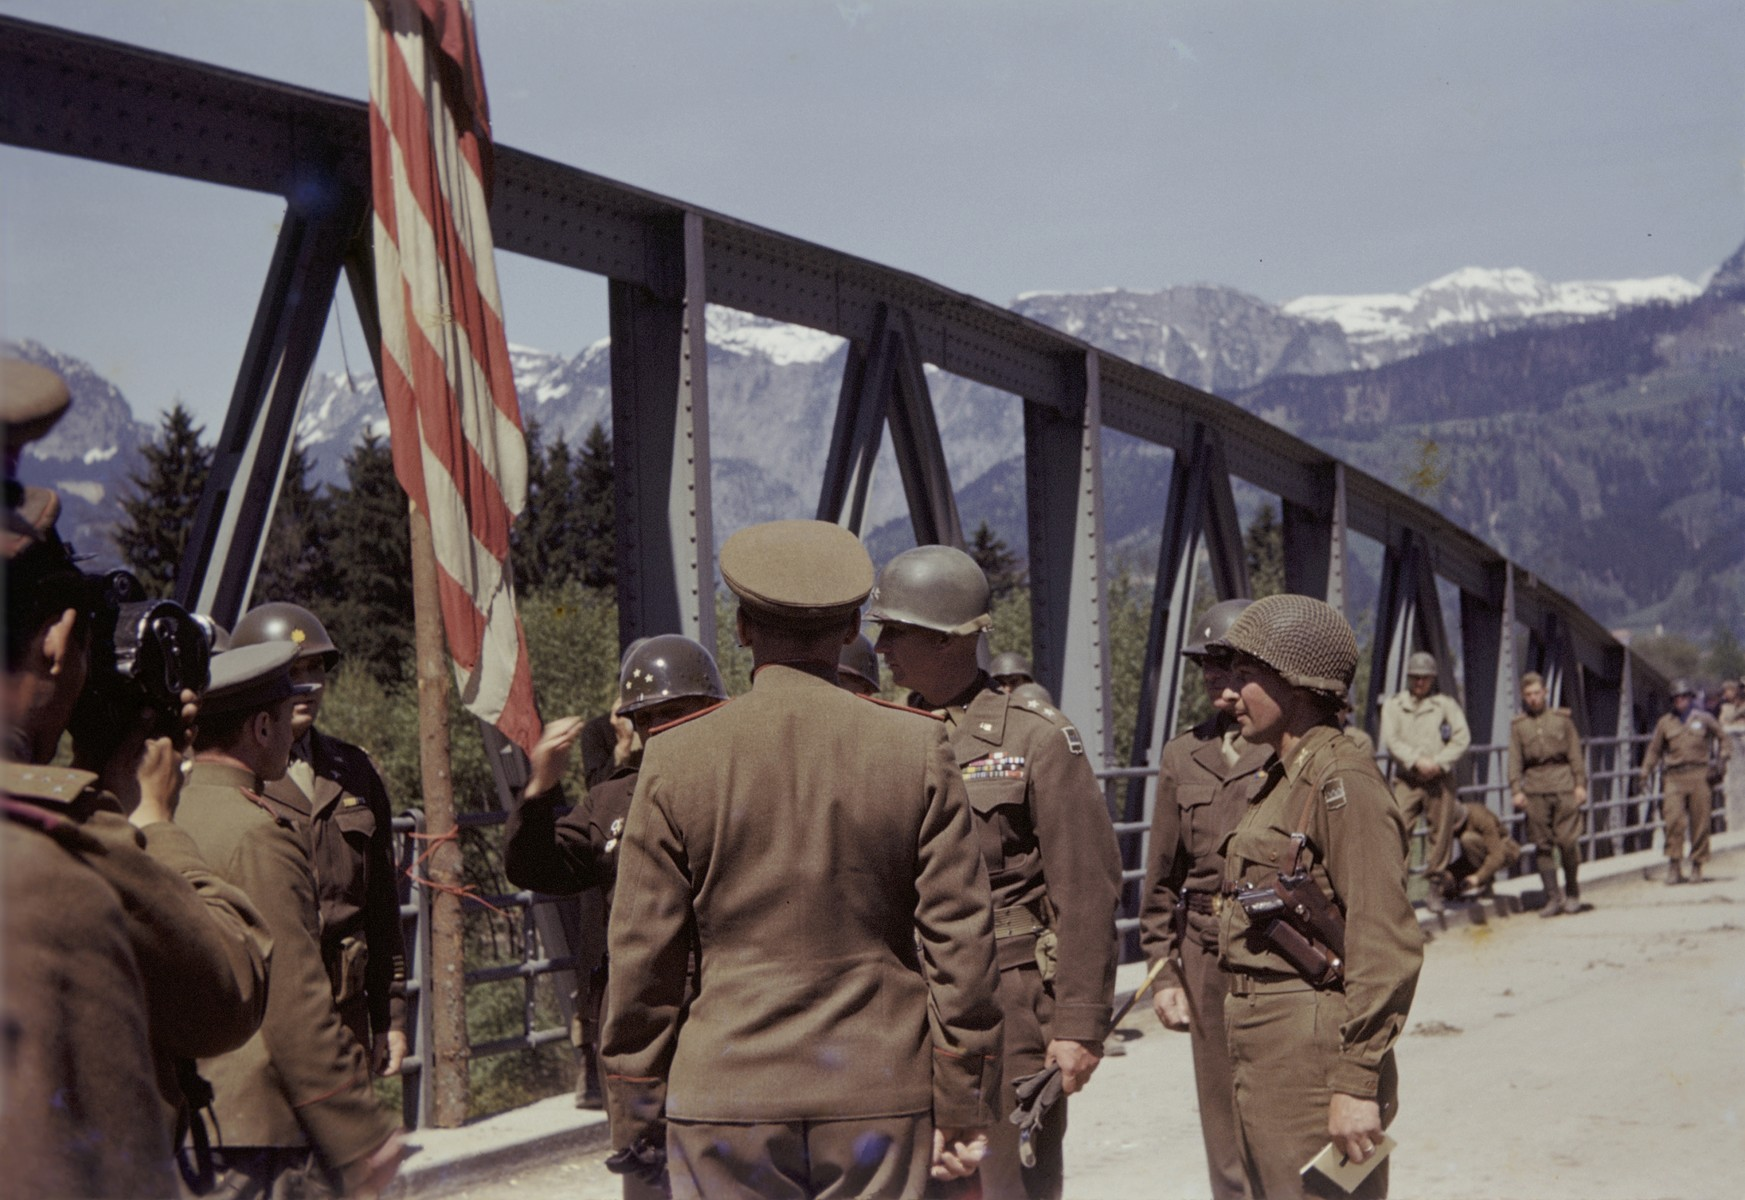 Members of the U.S. 9th Armored Division meet up with units of the Red Army near Linz, Austria.  Pictured is the Roethelbruecke Bridge over the Enns River, between Liezen and Selzthal.